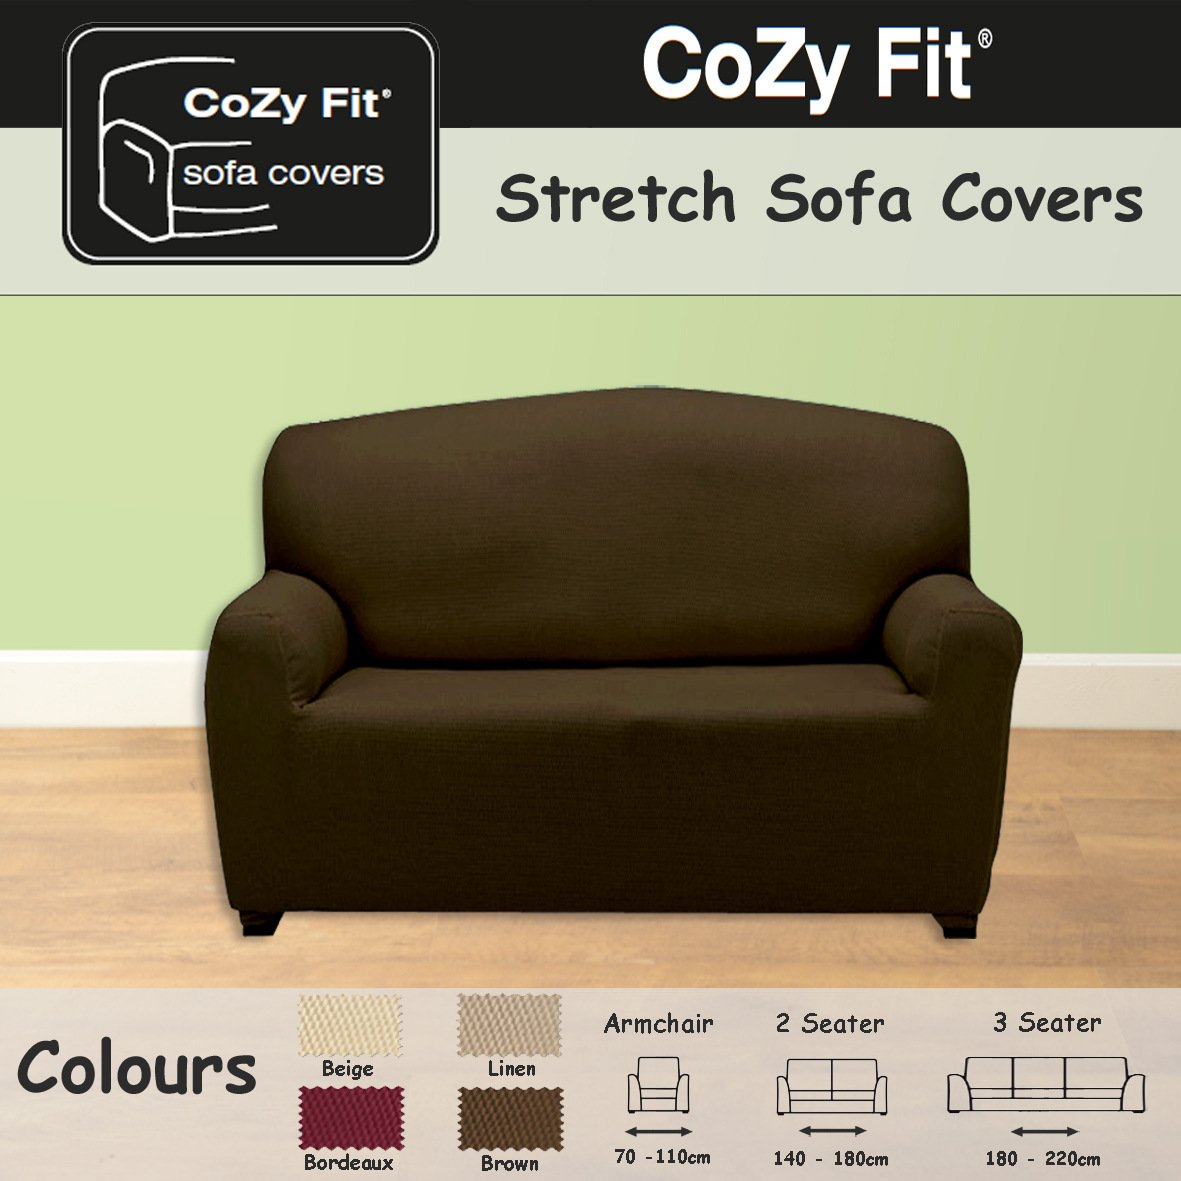 2 SEATER   Easy Stretch Elastic Fabric SOFA / SETTEE SLIP COVER Chocolate  Brown U0027Sofa Huggersu0027 By VICEROY BEDDING: Amazon.co.uk: Kitchen U0026 Home